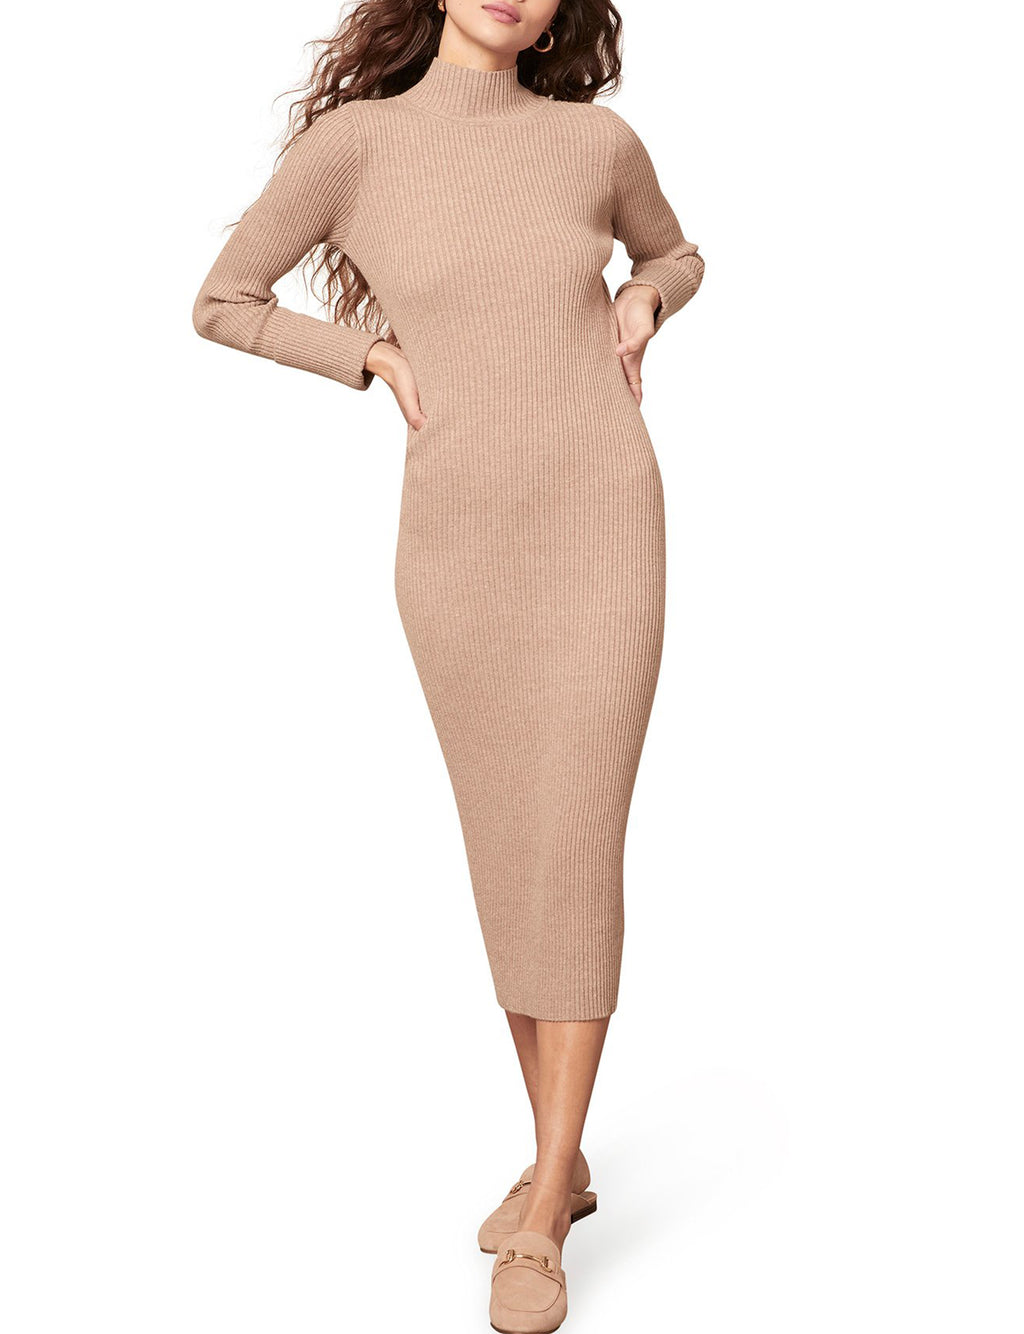 Sweater of Intent Dress in Light Taupe